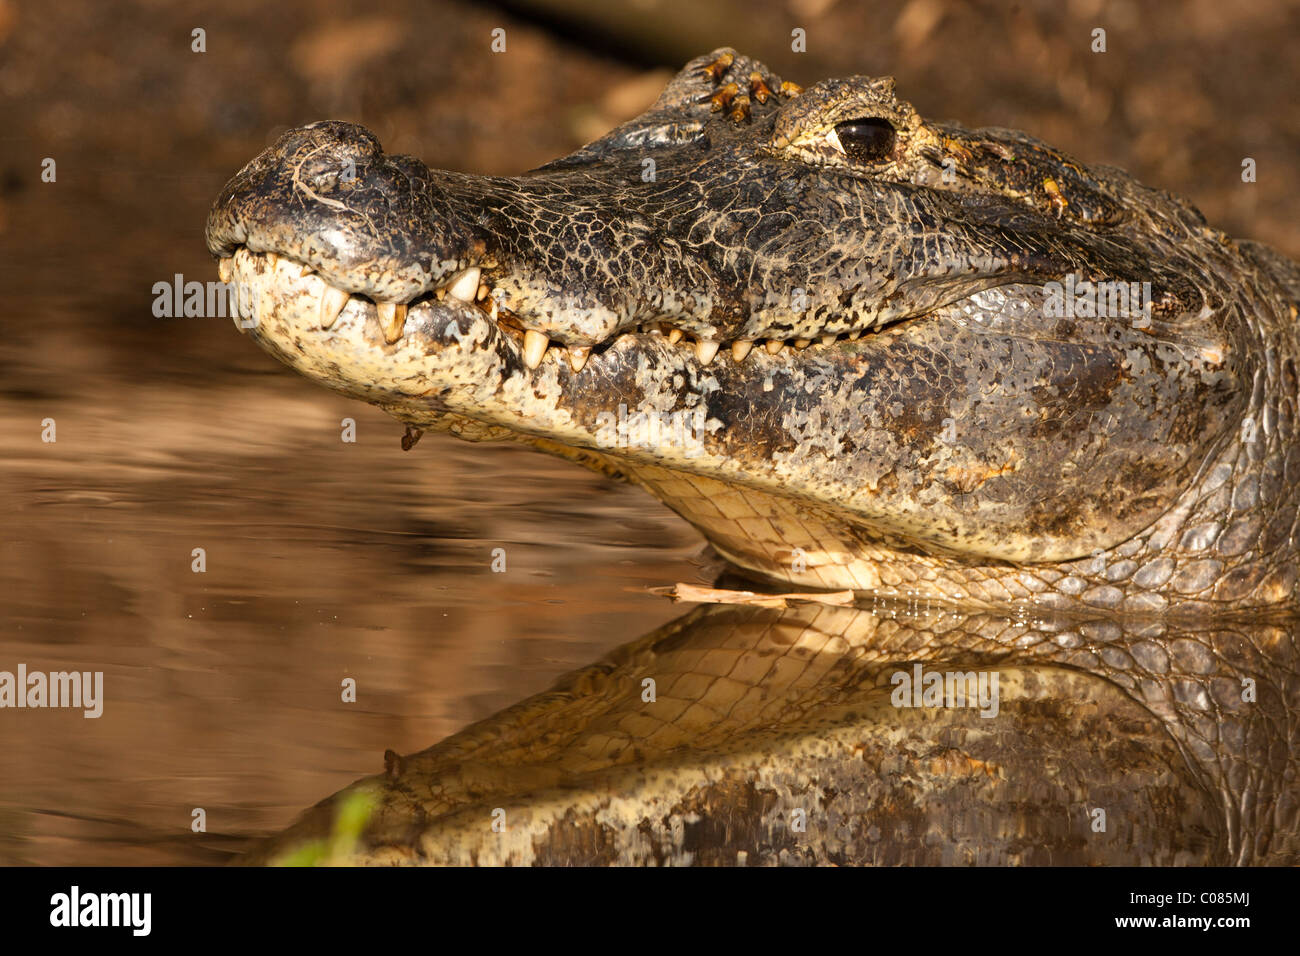 Spectacled Caiman in the river of the Pantanal, Brazil - Stock Image